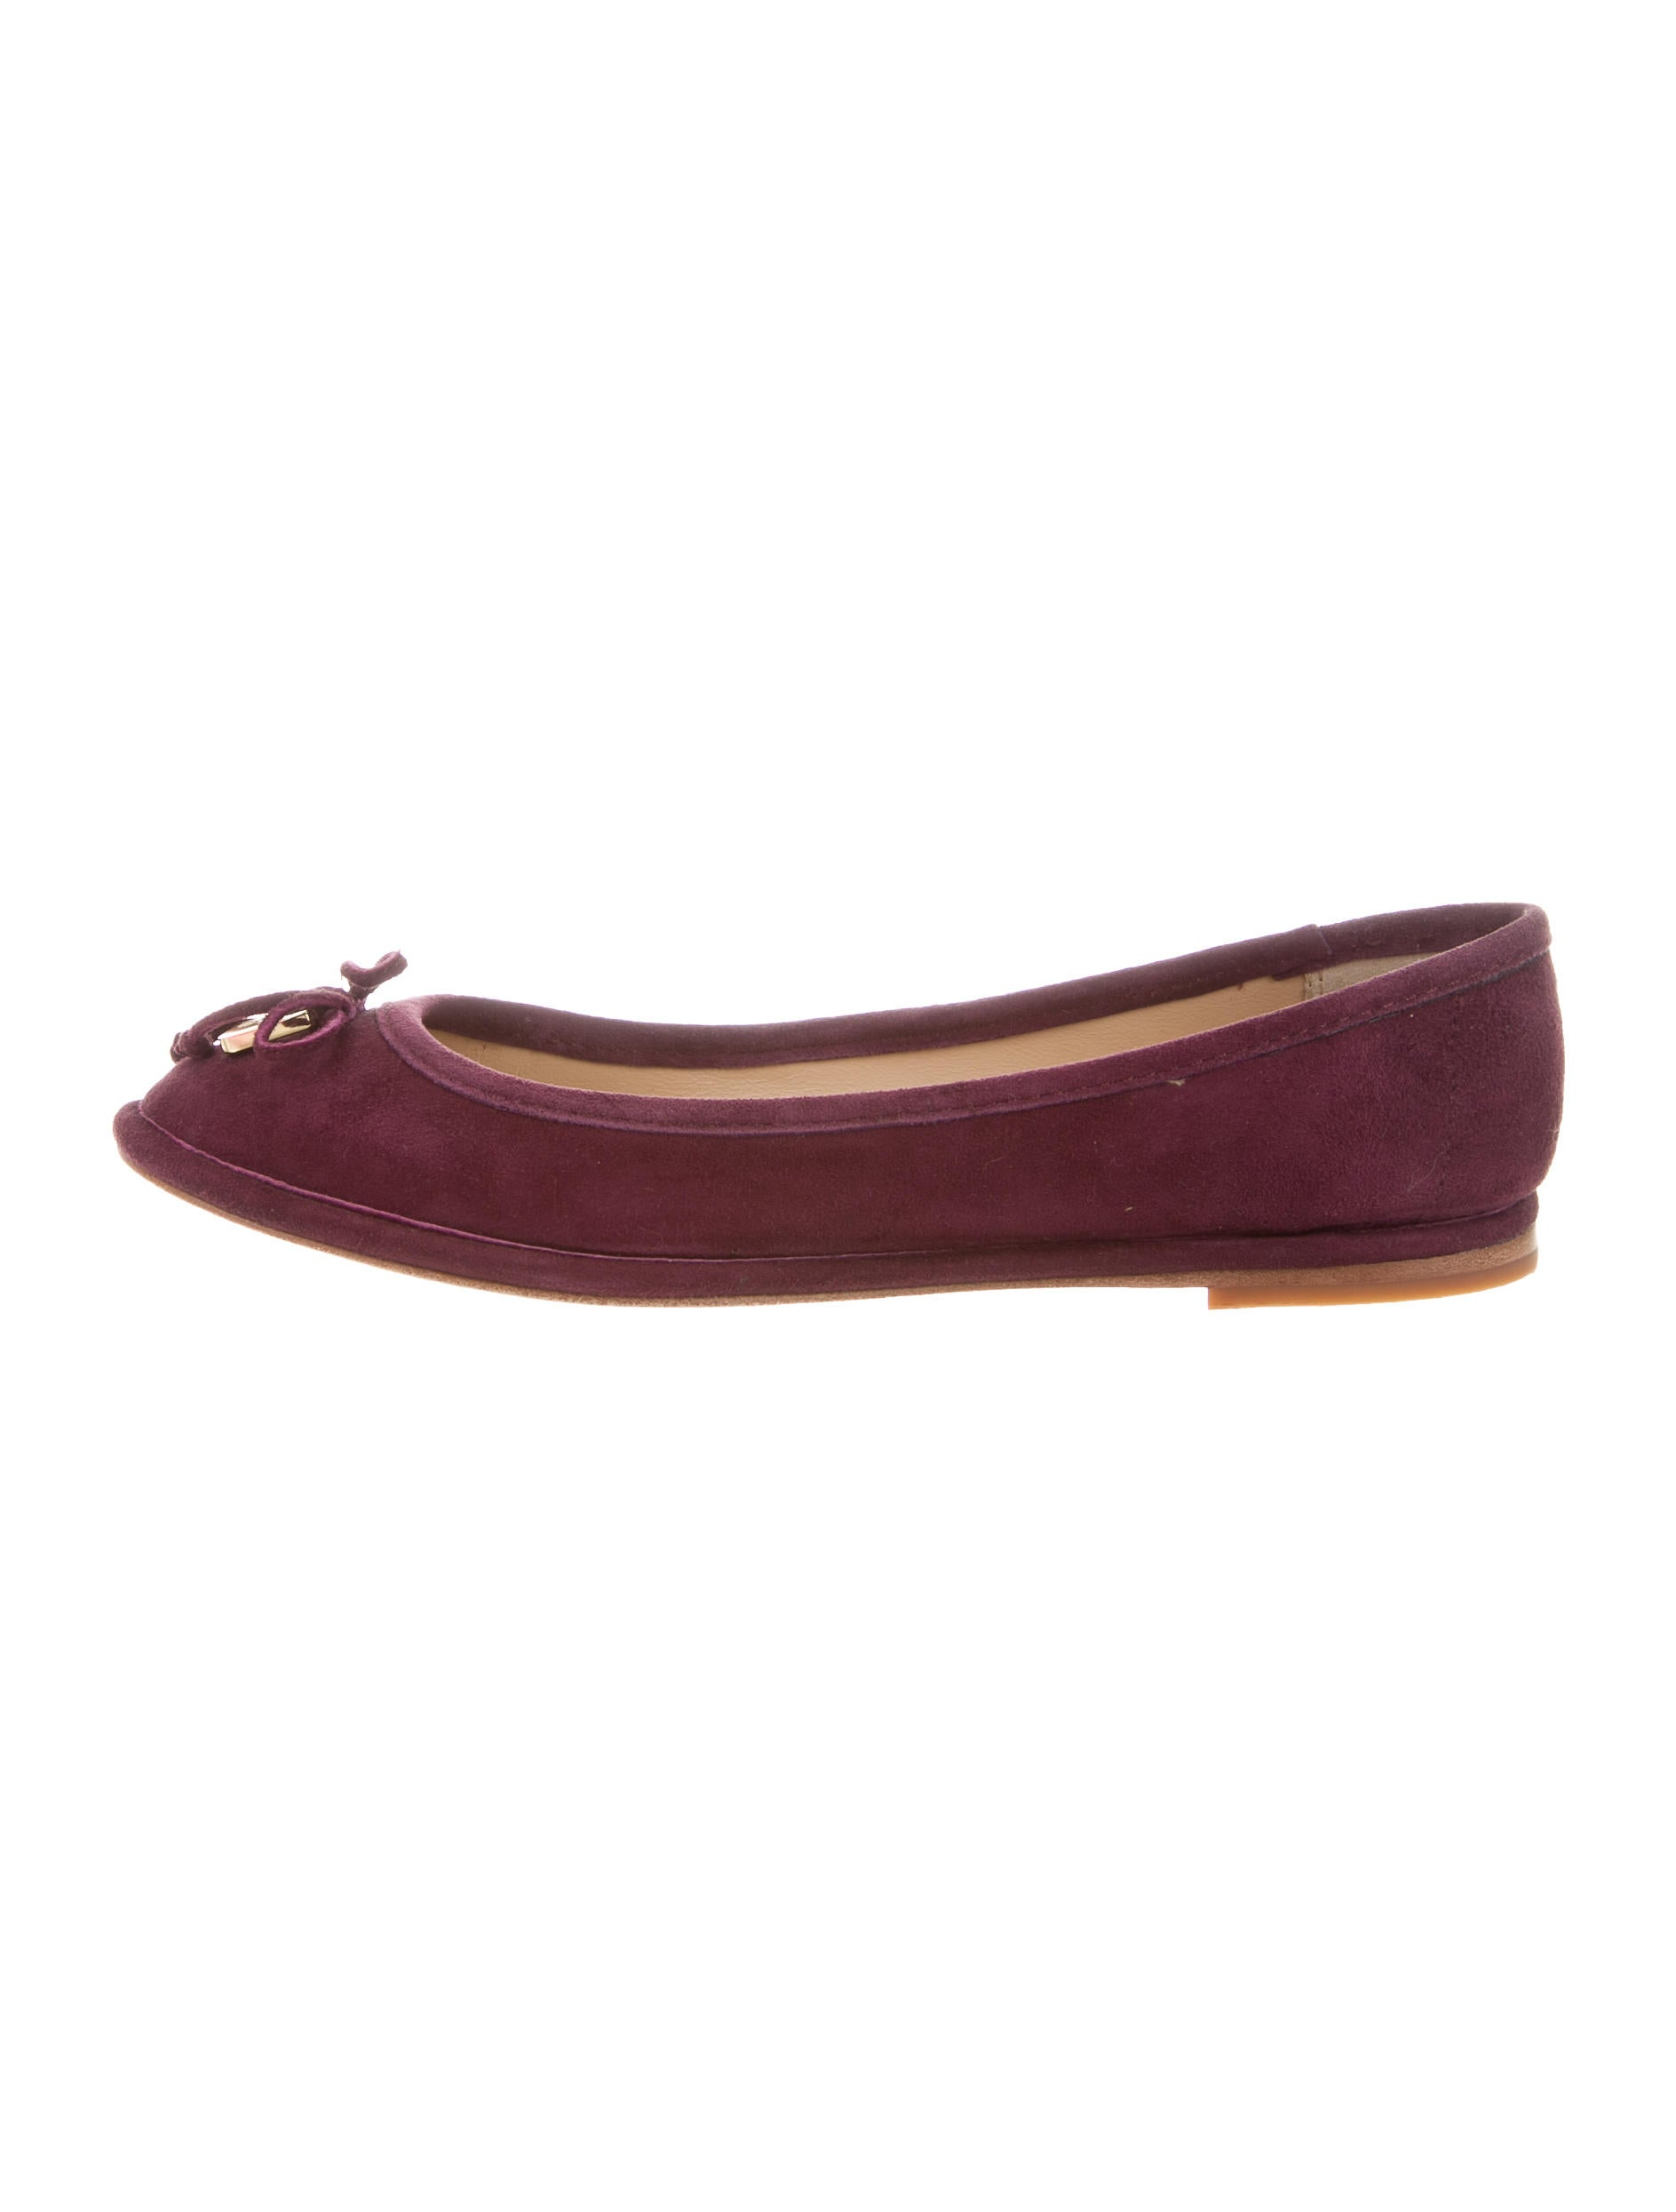 Suede Women's Flats: forex-2016.ga - Your Online Women's Shoes Store! Get 5% in rewards with Club O! BCBGeneration Womens malinda Suede Pointed Toe Ankle Strap Ballet Flats. SALE ends soon ends in 22 hours. Quick View. Lonia Shoes Women's Black Suede D'Orsay Flats. 3 Reviews. SALE ends soon ends in 22 hours.